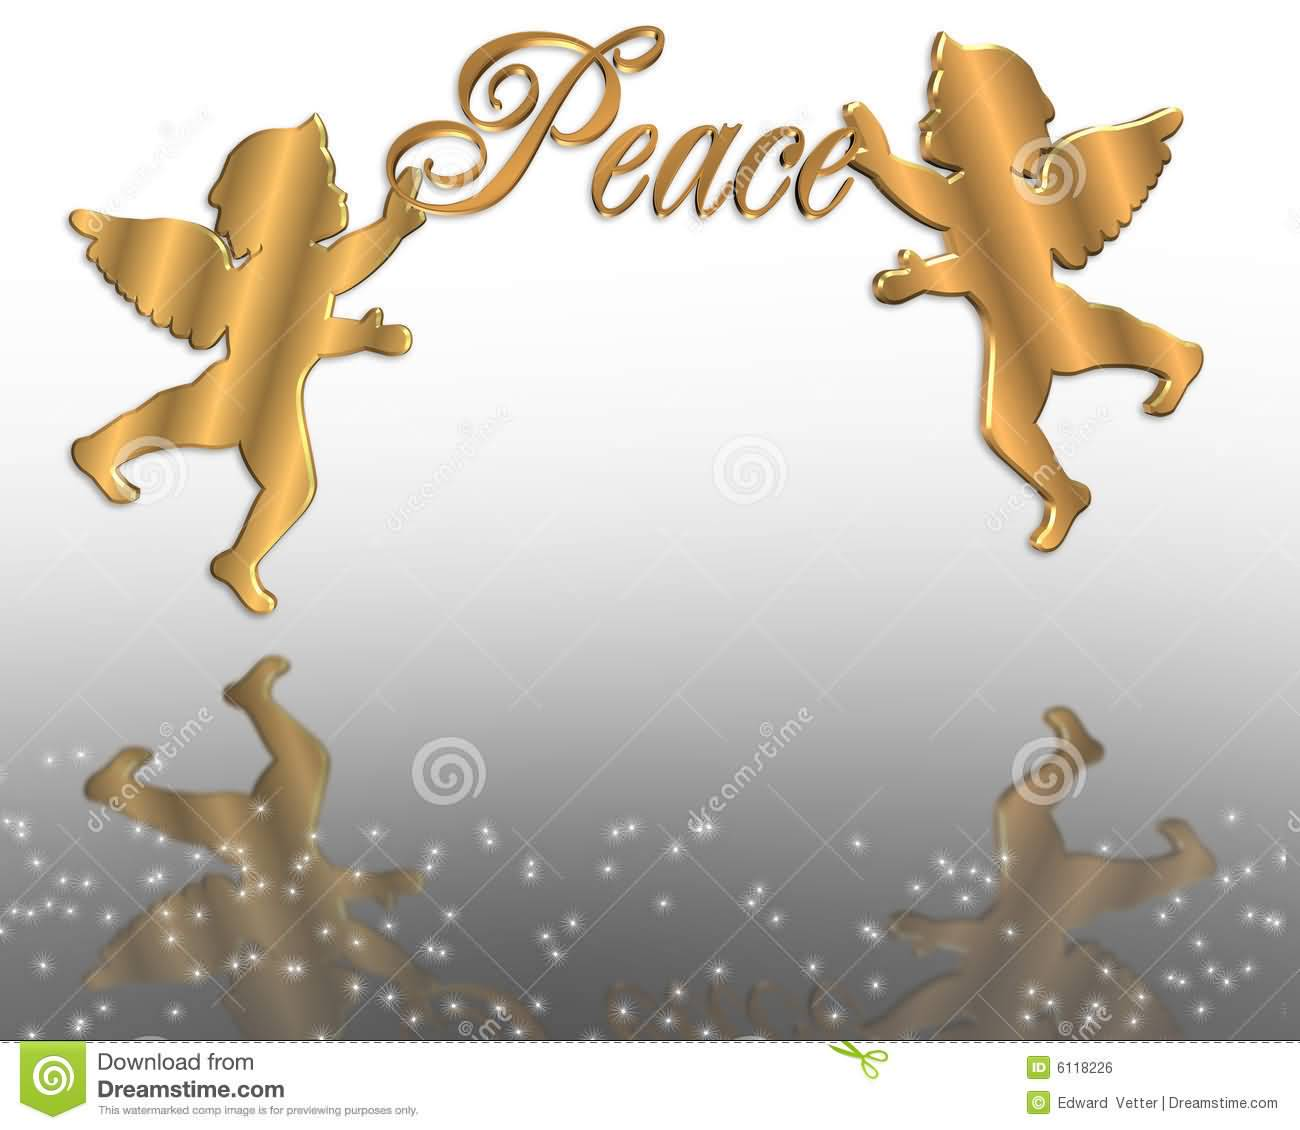 Awesome Peace Angels Image